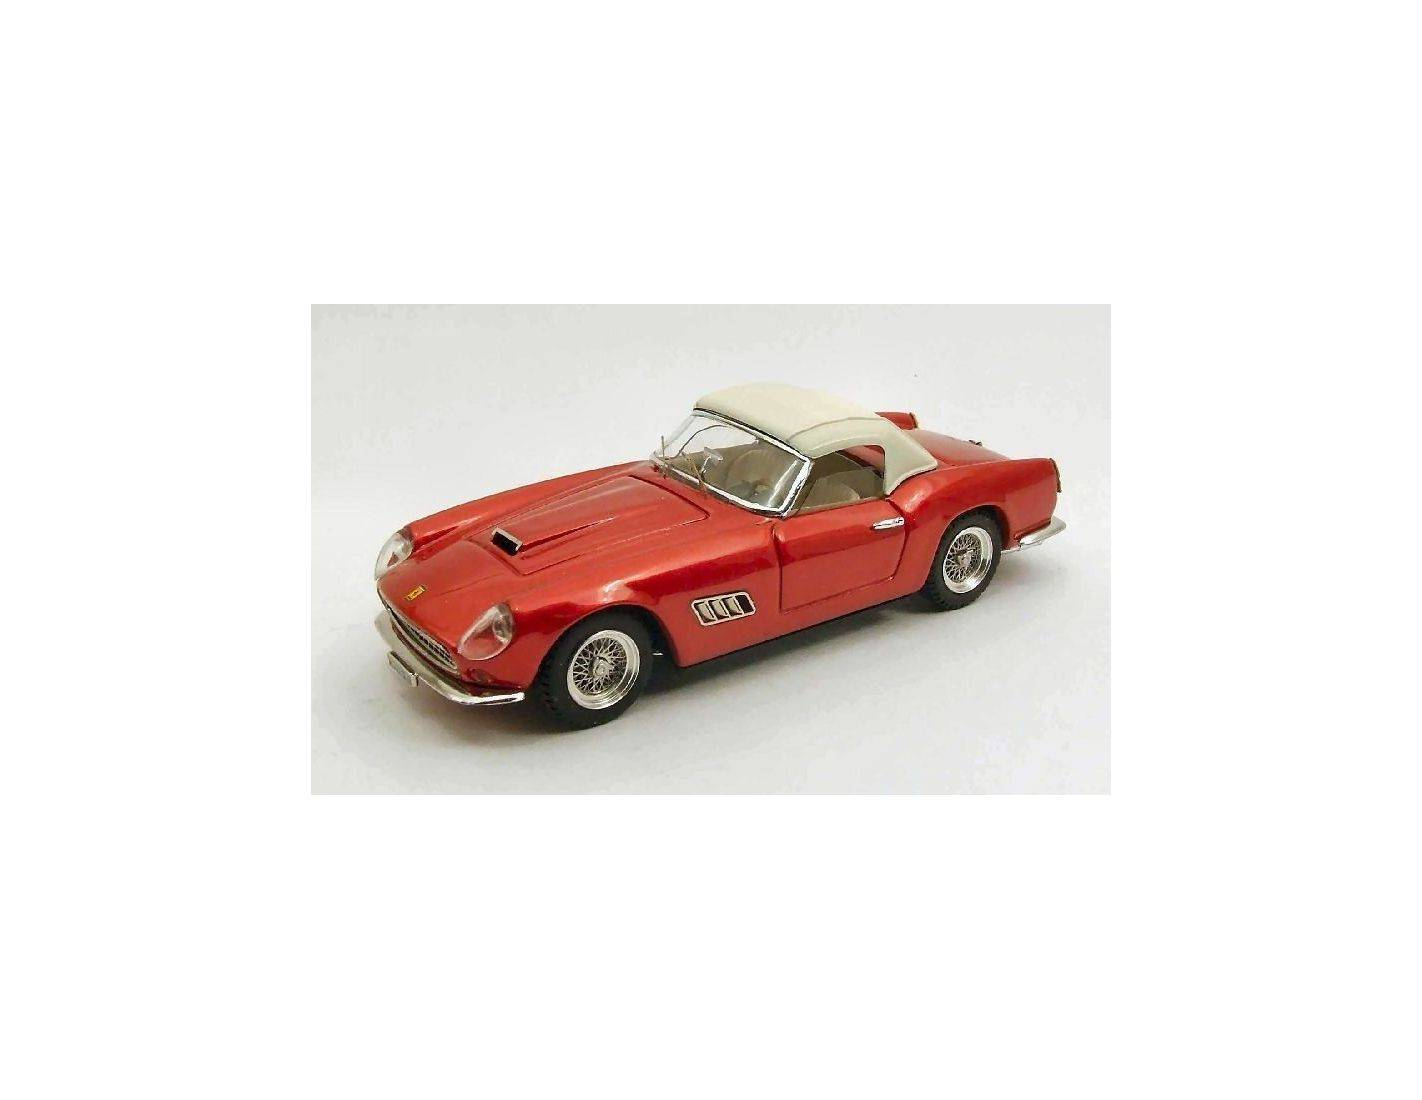 Art Model AM0245 FERRARI 250 CALIFORNIA STRADALE USA 1959 W/CAPOTE WHITE RED MET.1:43 Modellino